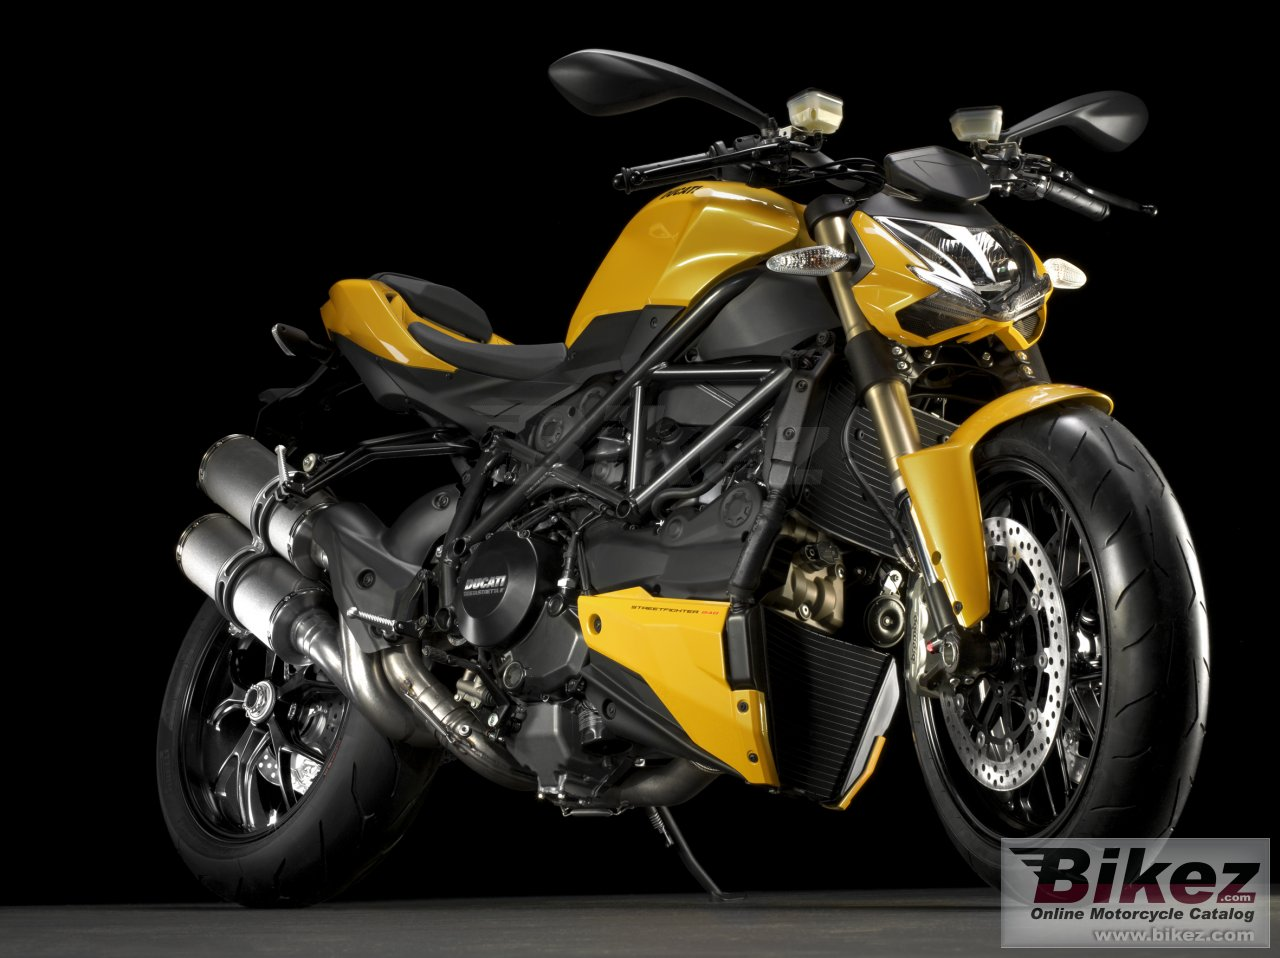 Big Ducati streetfighter 848 picture and wallpaper from Bikez.com